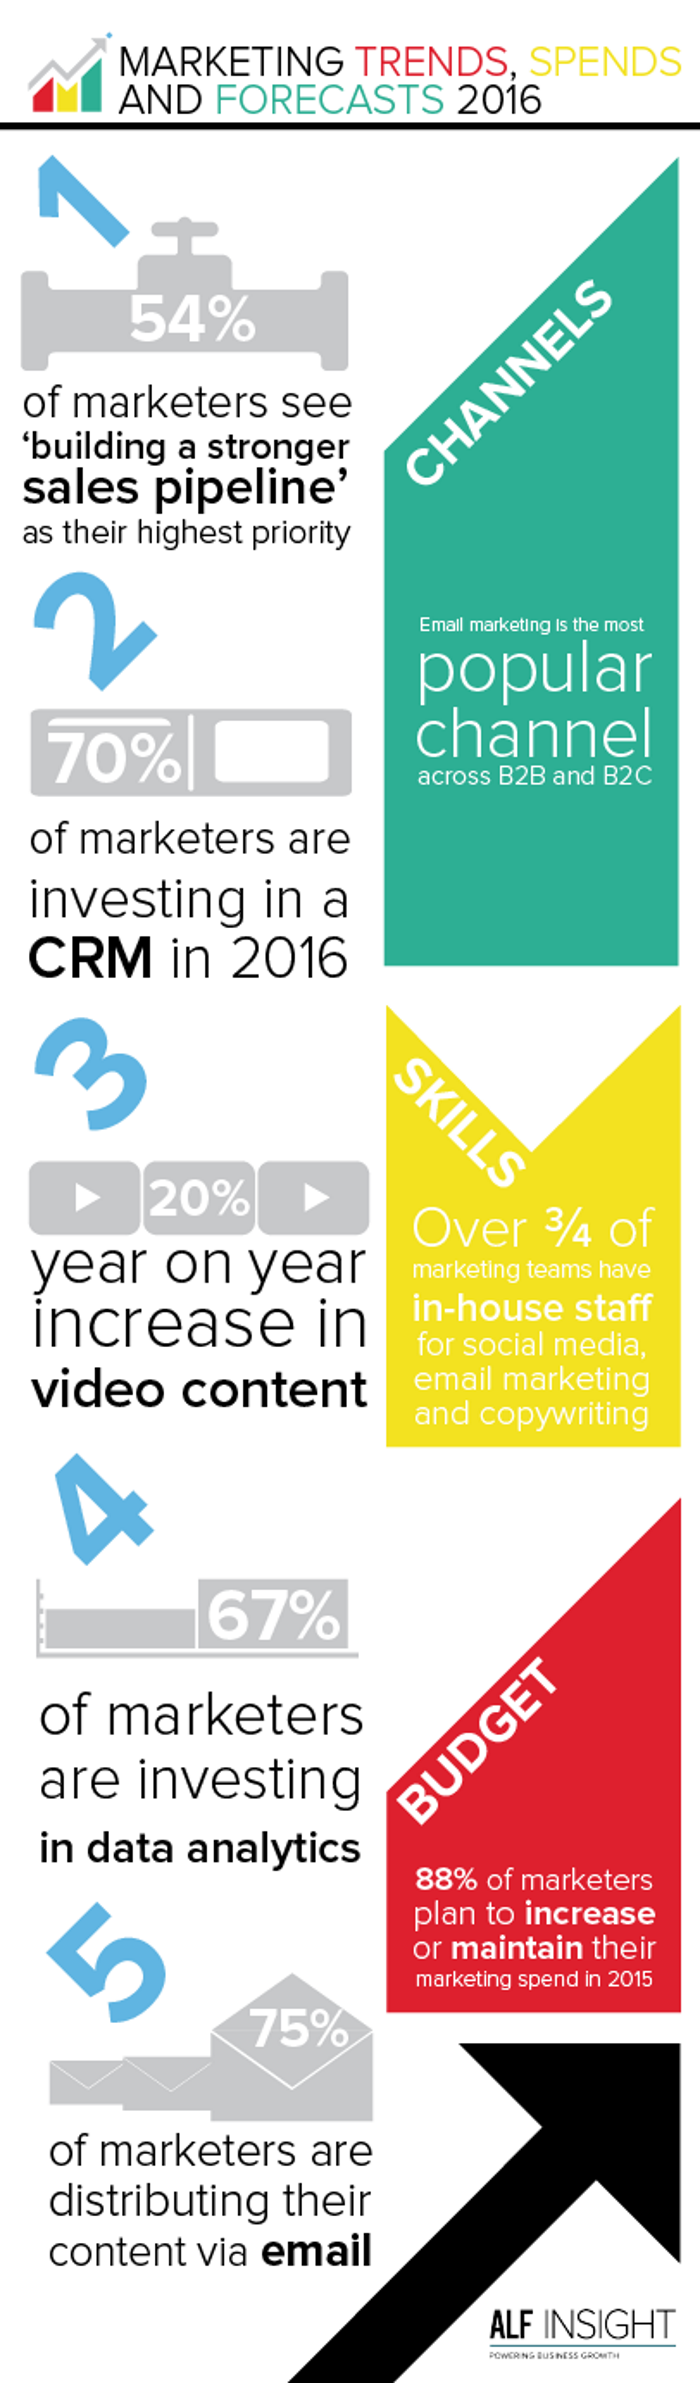 Marketing_Trends_2016_Infographic